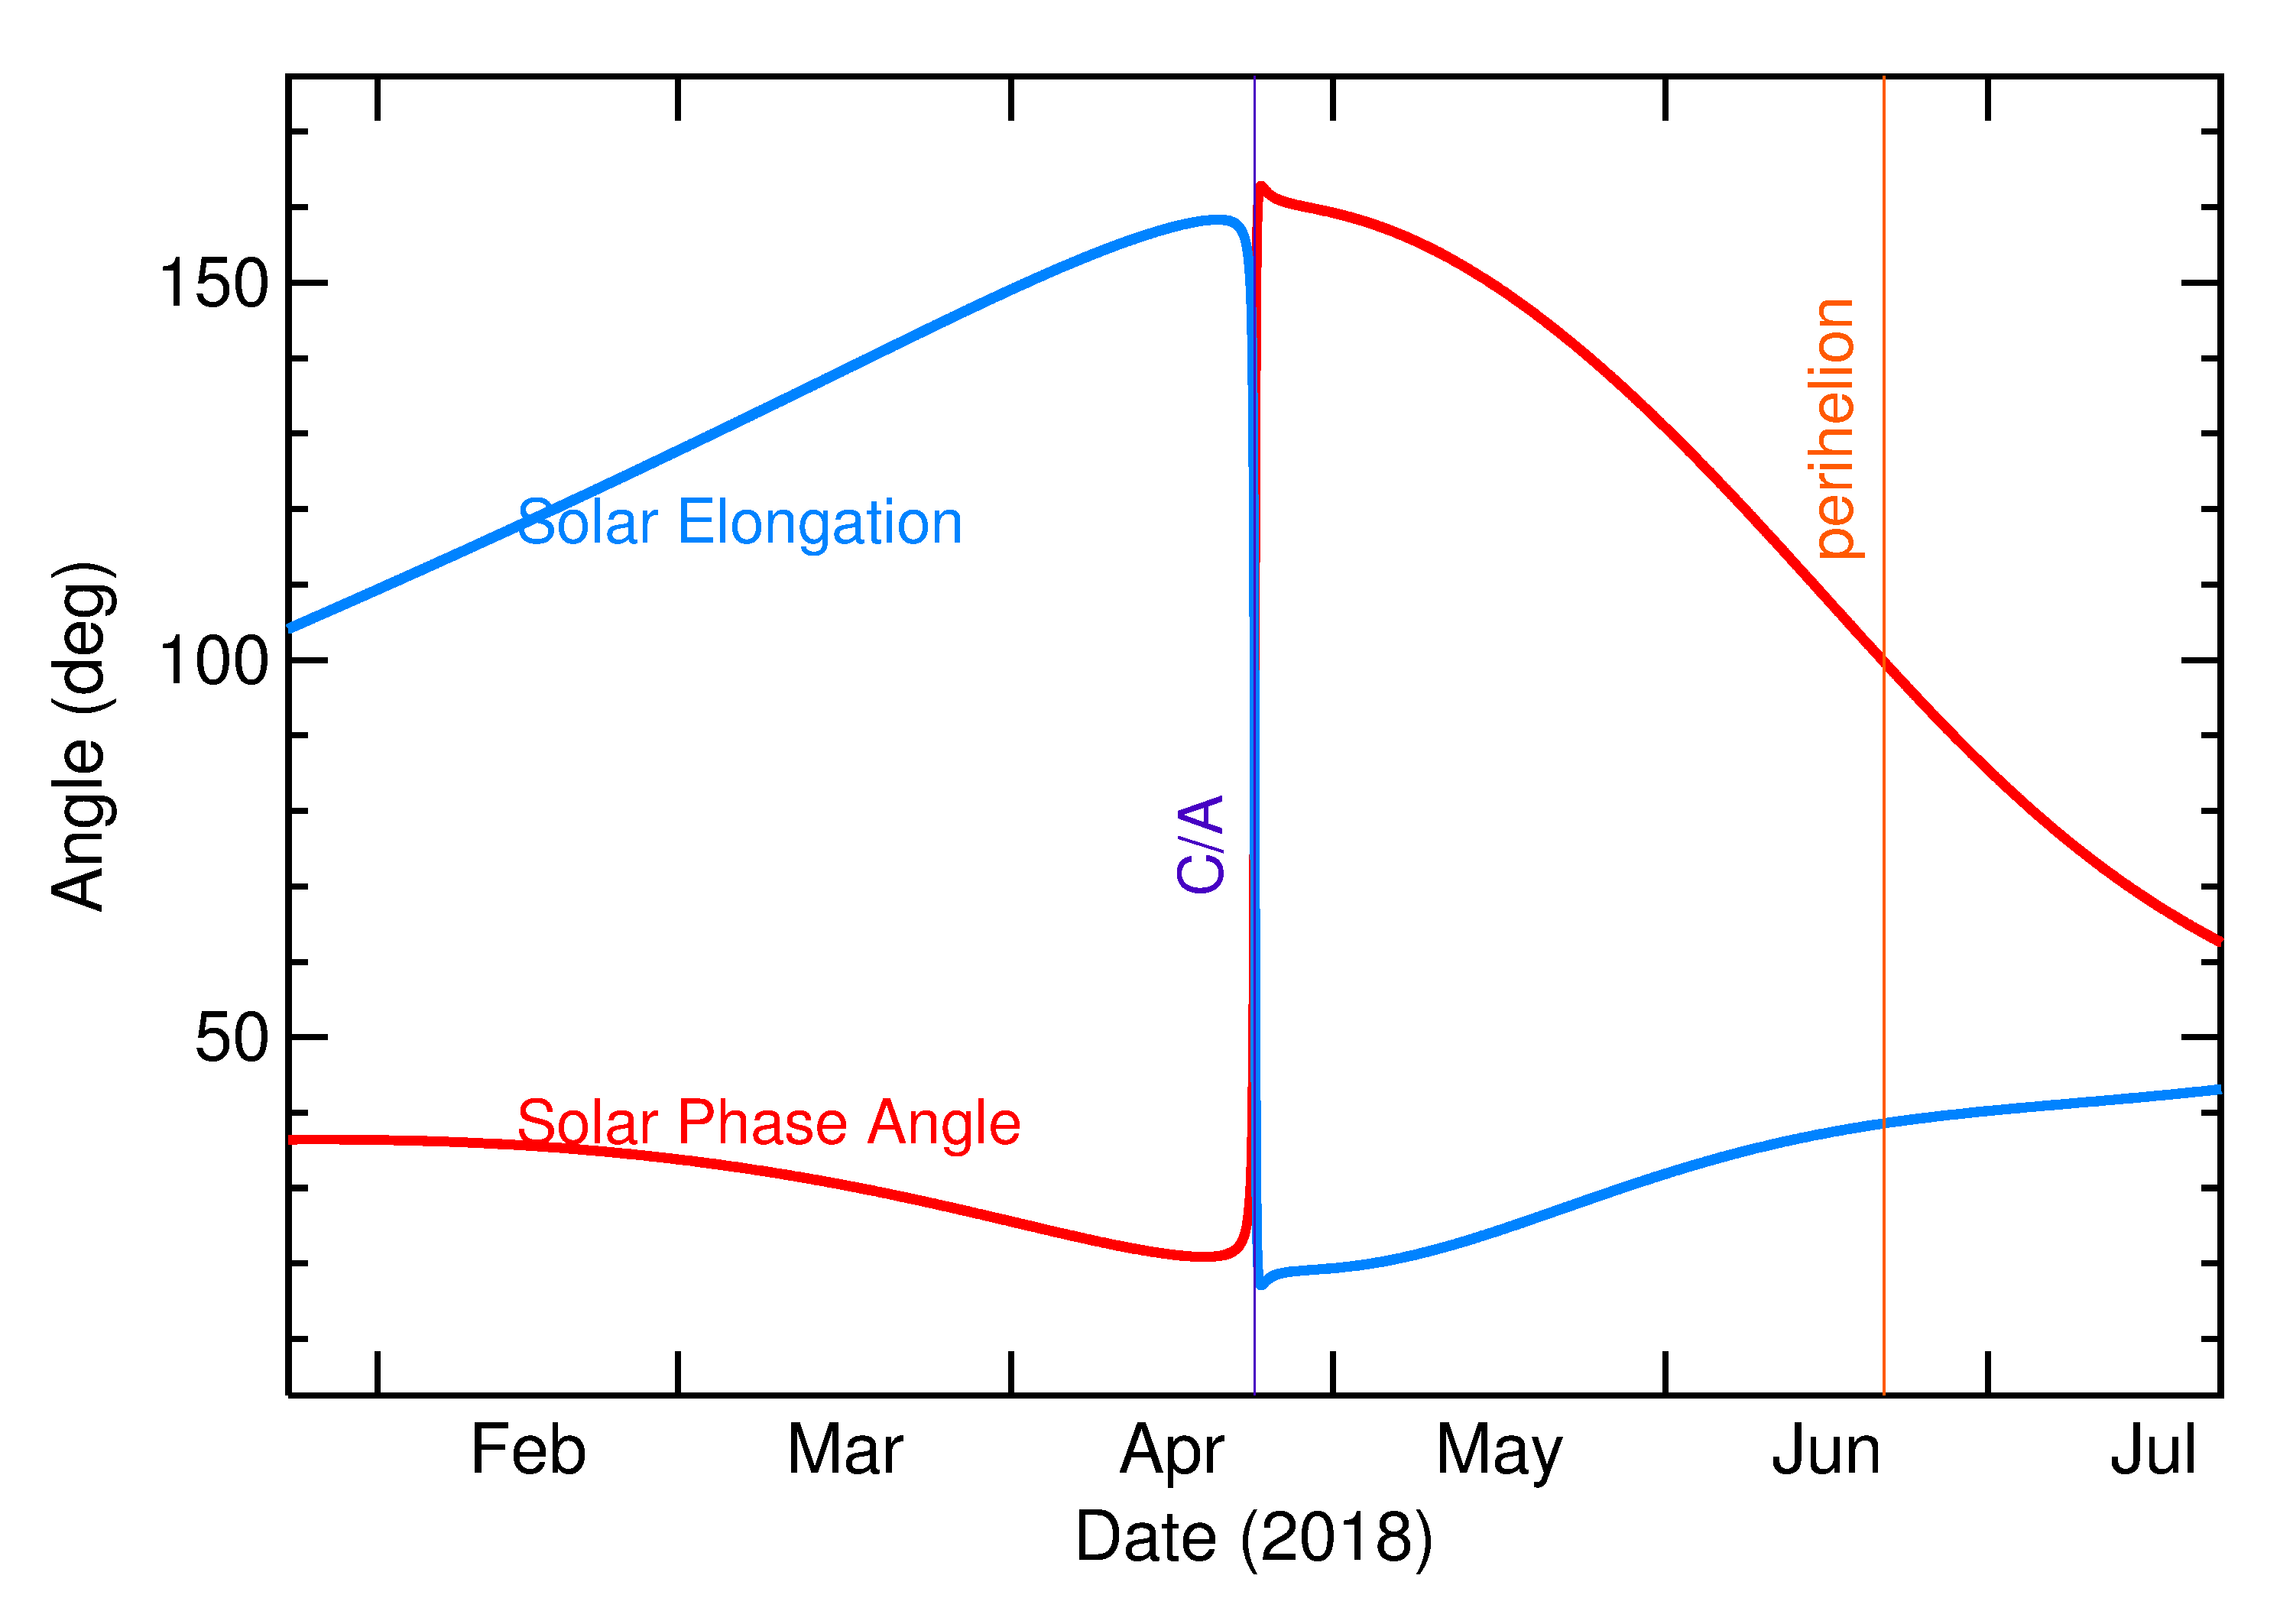 Solar Elongation and Solar Phase Angle of 2018 HV in the months around closest approach